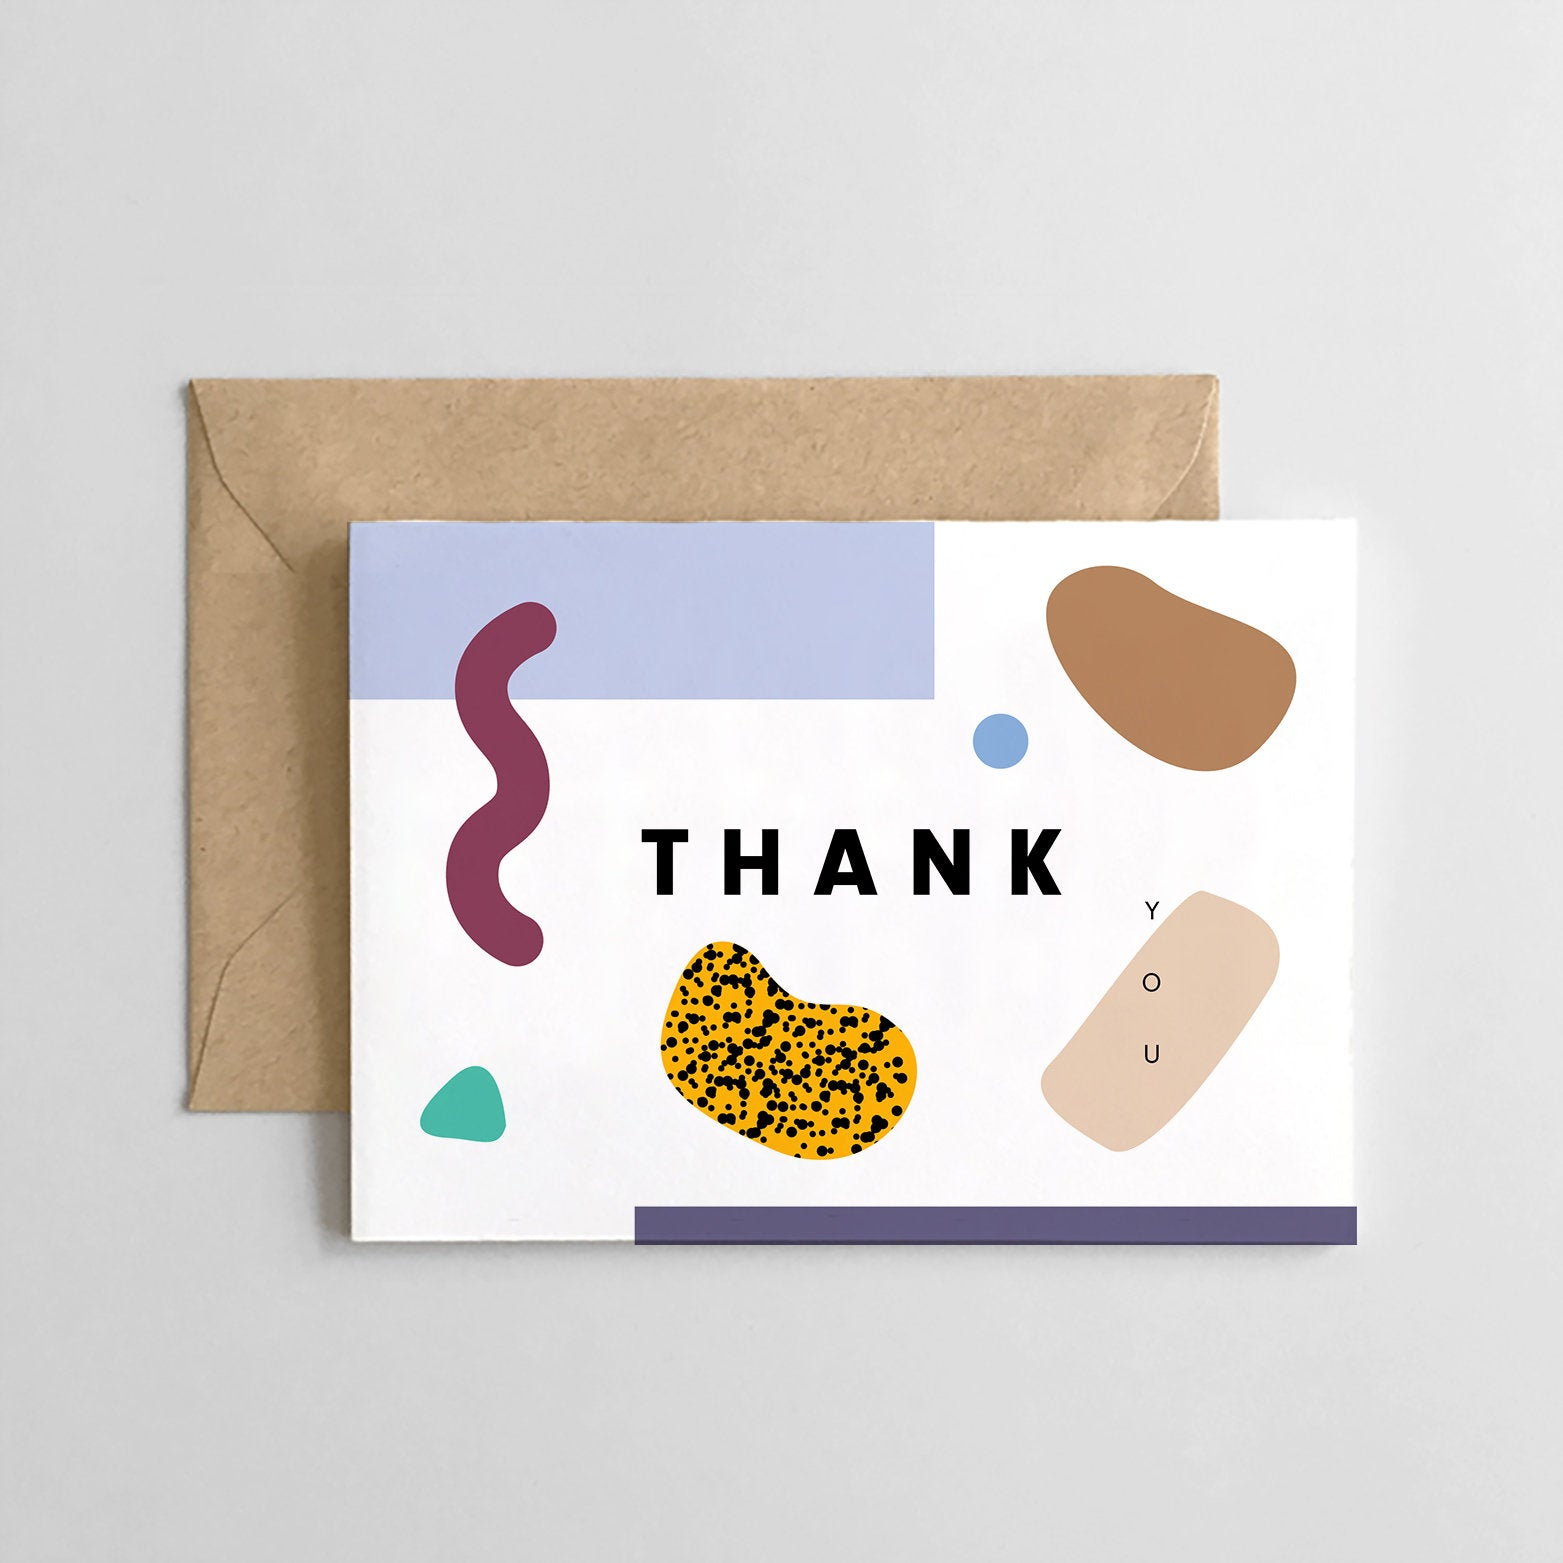 Thank You Boxed Set of 6 Cards: Abstract Design